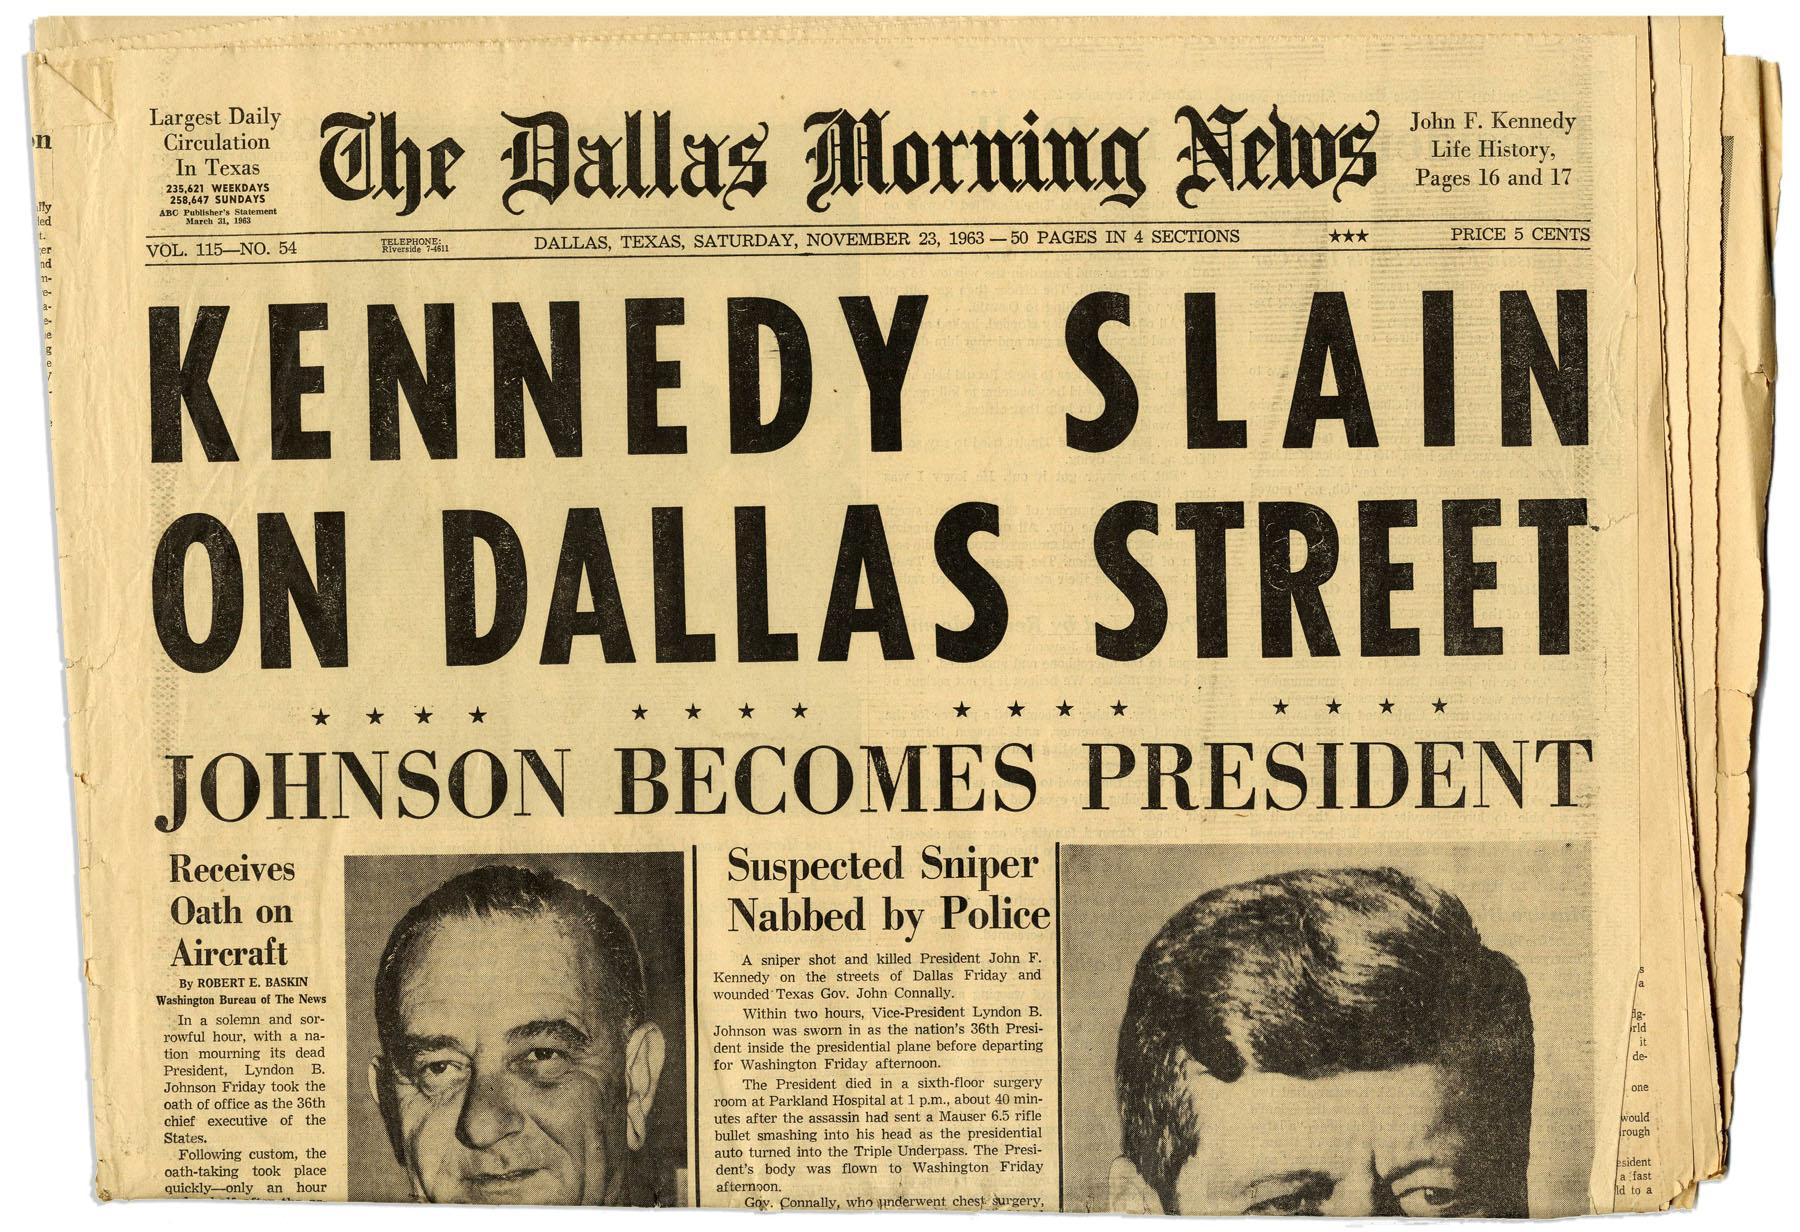 five best kennedy assassination books the nation jon wiener five best kennedy assassination books the nation 11 12